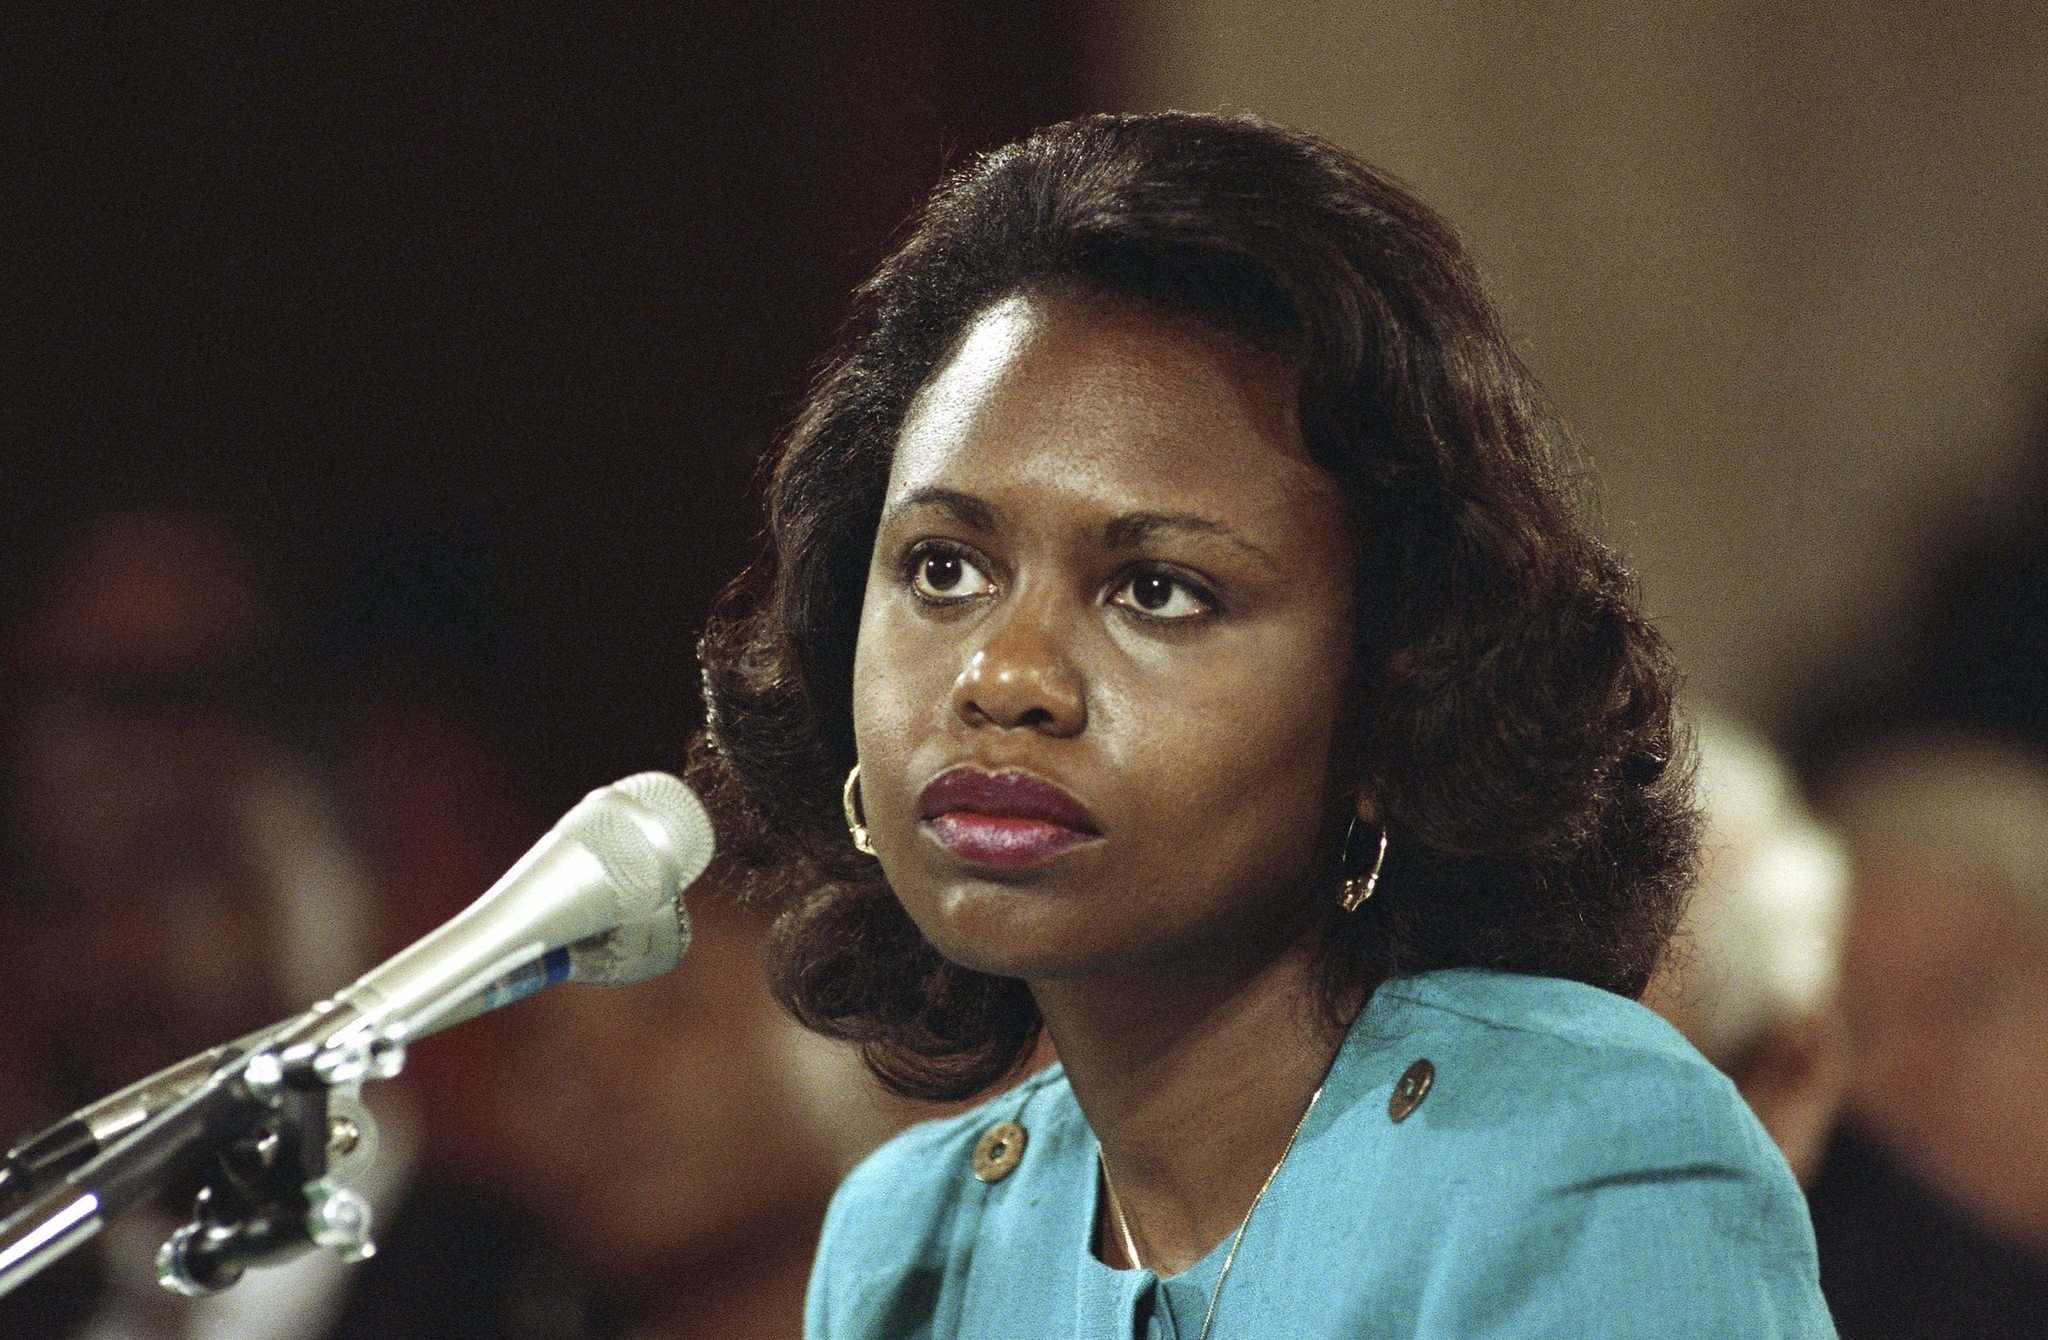 The Associated Press files</p><p>David Friend goes into detail on the sexcapades that shaped the end of the 20th century, including Anita Hill accusing then-U.S. Supreme Court nominee Clarence Thomas of sexual harassment.